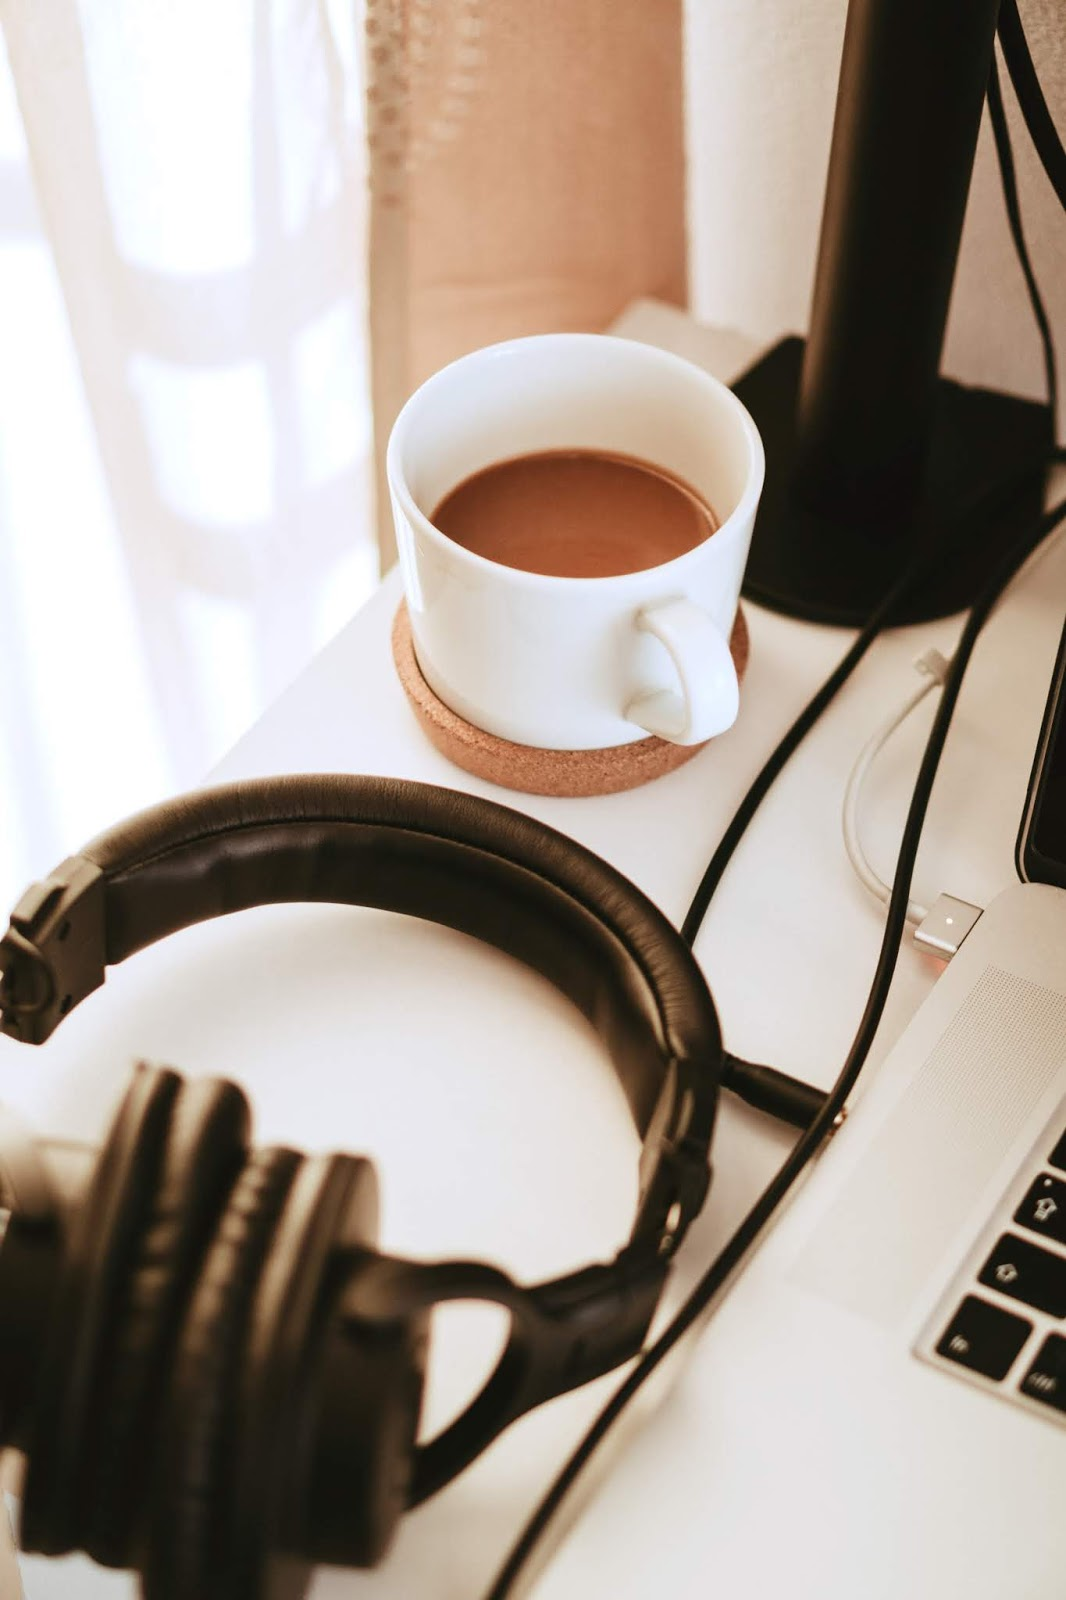 Image is of a coffee mug and black headphones, on a white desk. In the background, a brown curtain and white sheer underlay is visible. The base of a black desk lamp and corner of a laptop is also partially visible.